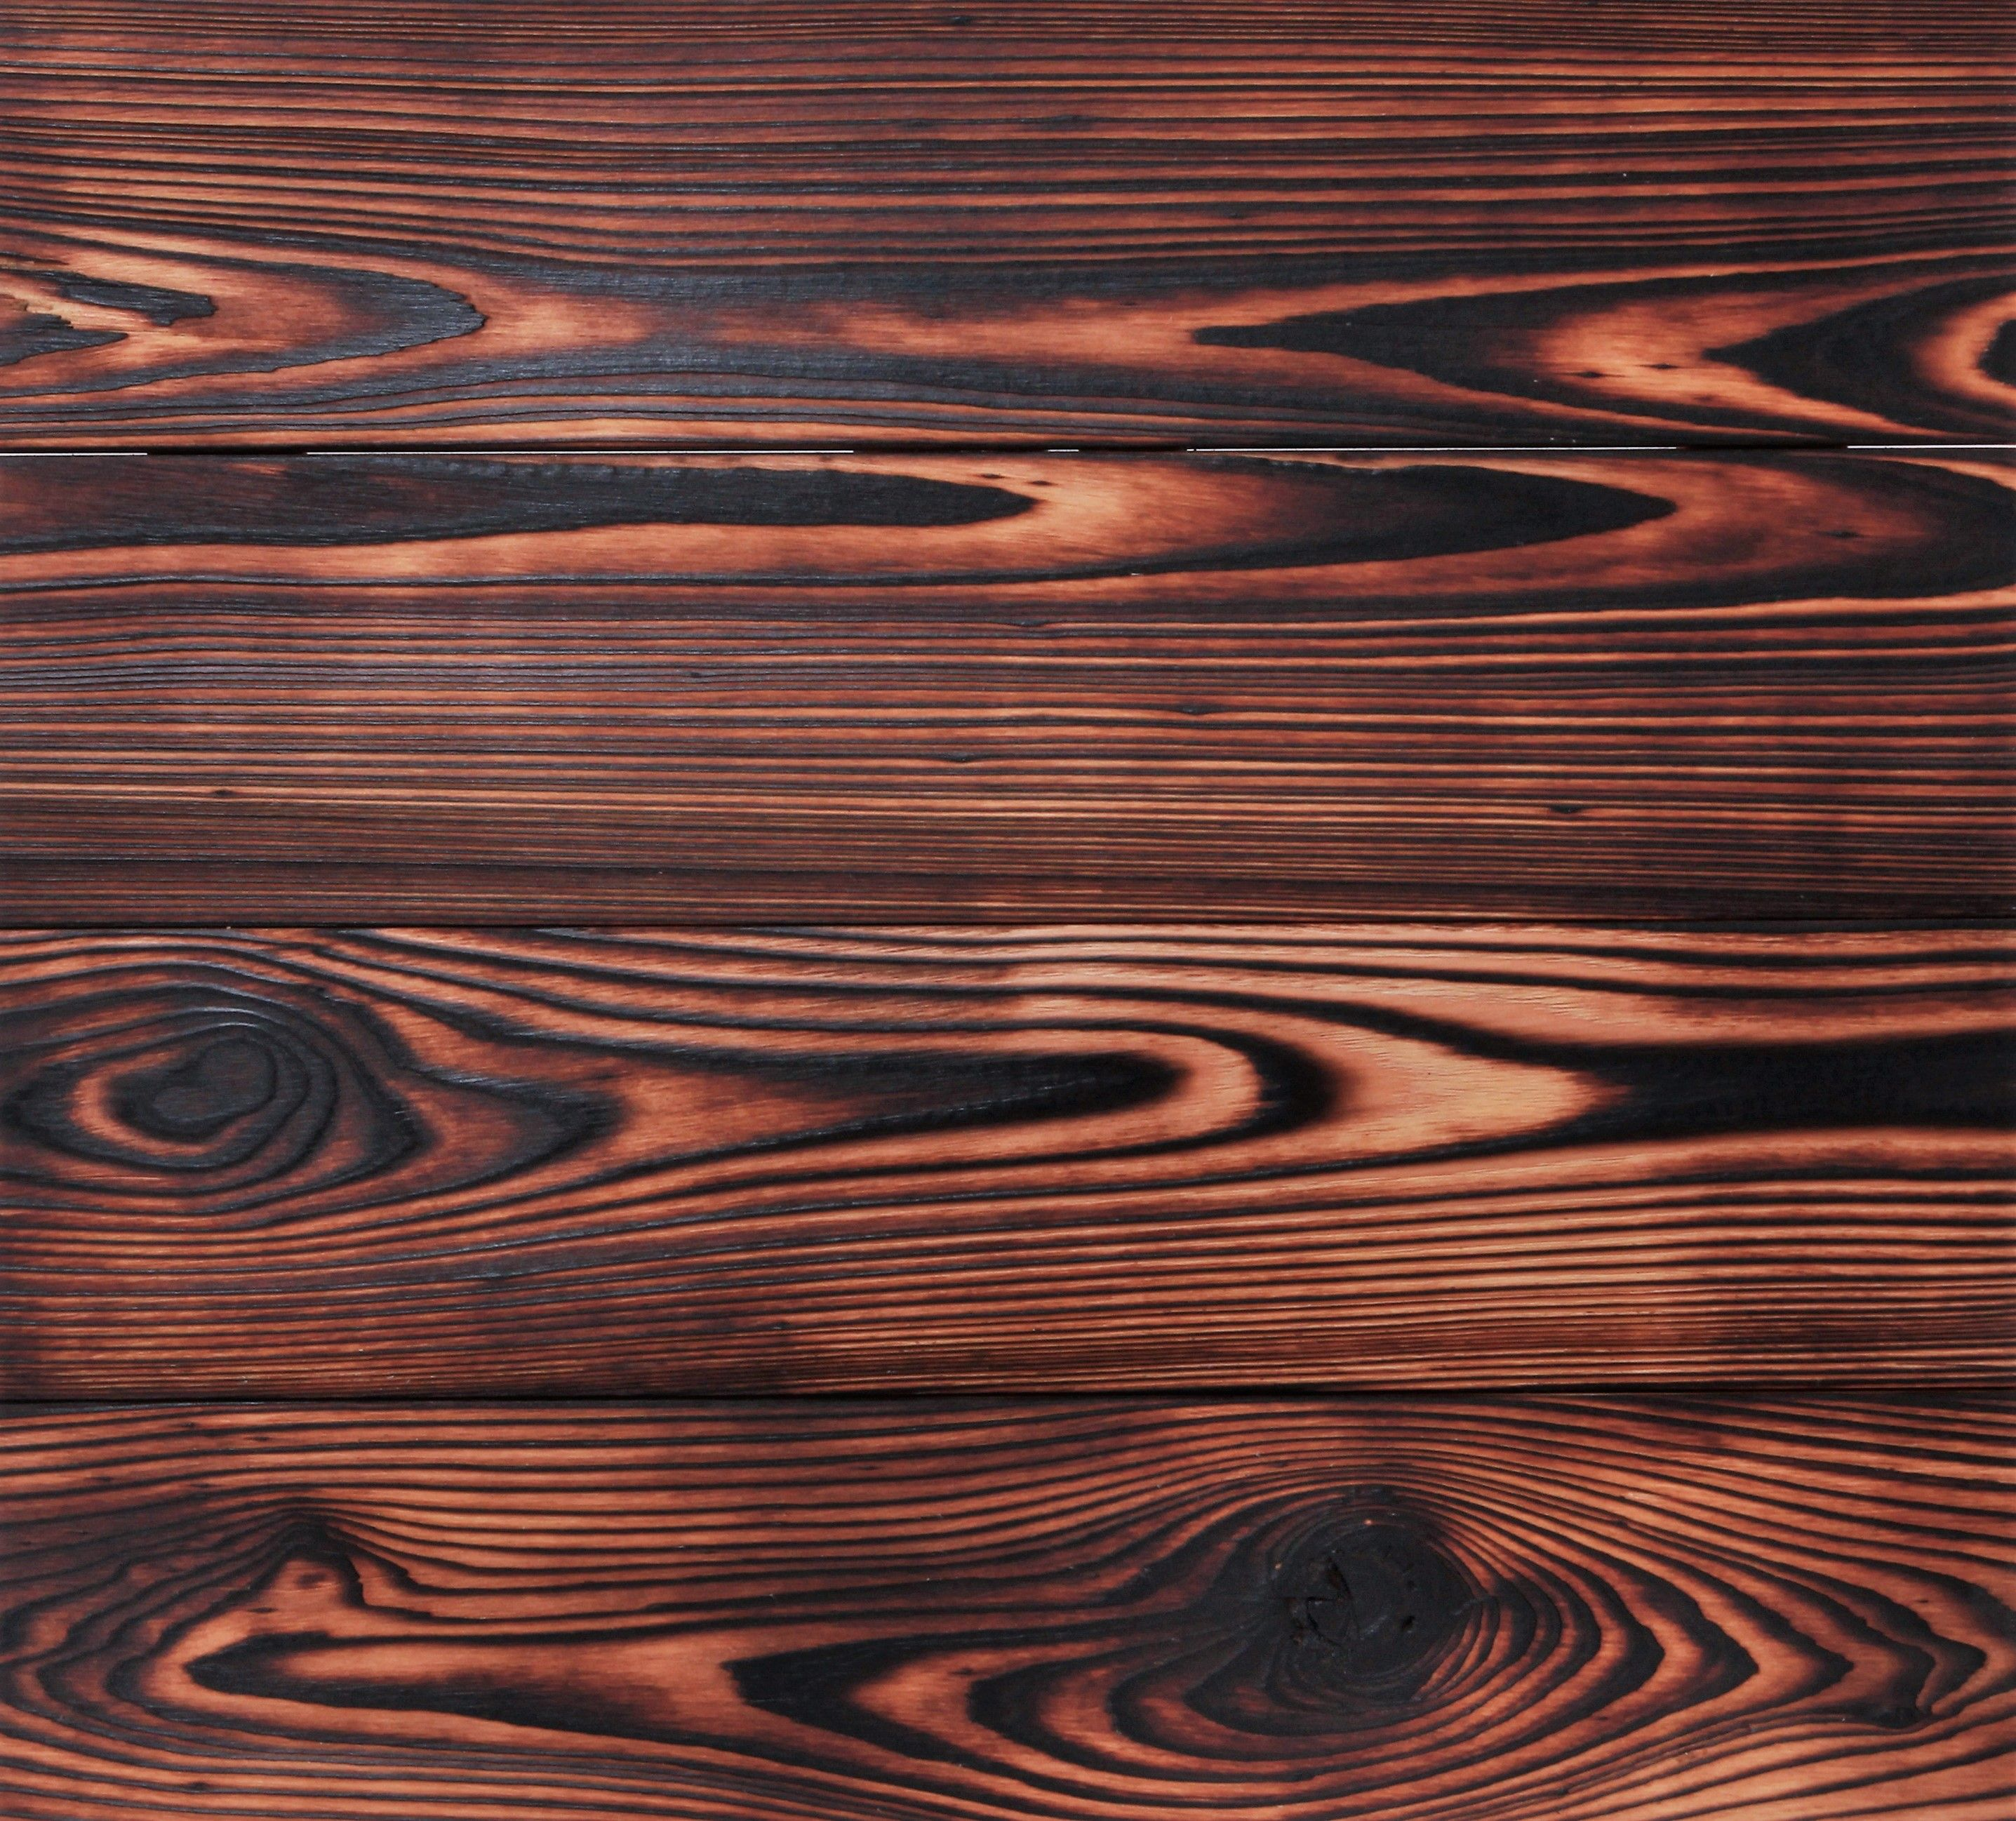 Charred Wood Products Llc Offers Charred Wood Siding